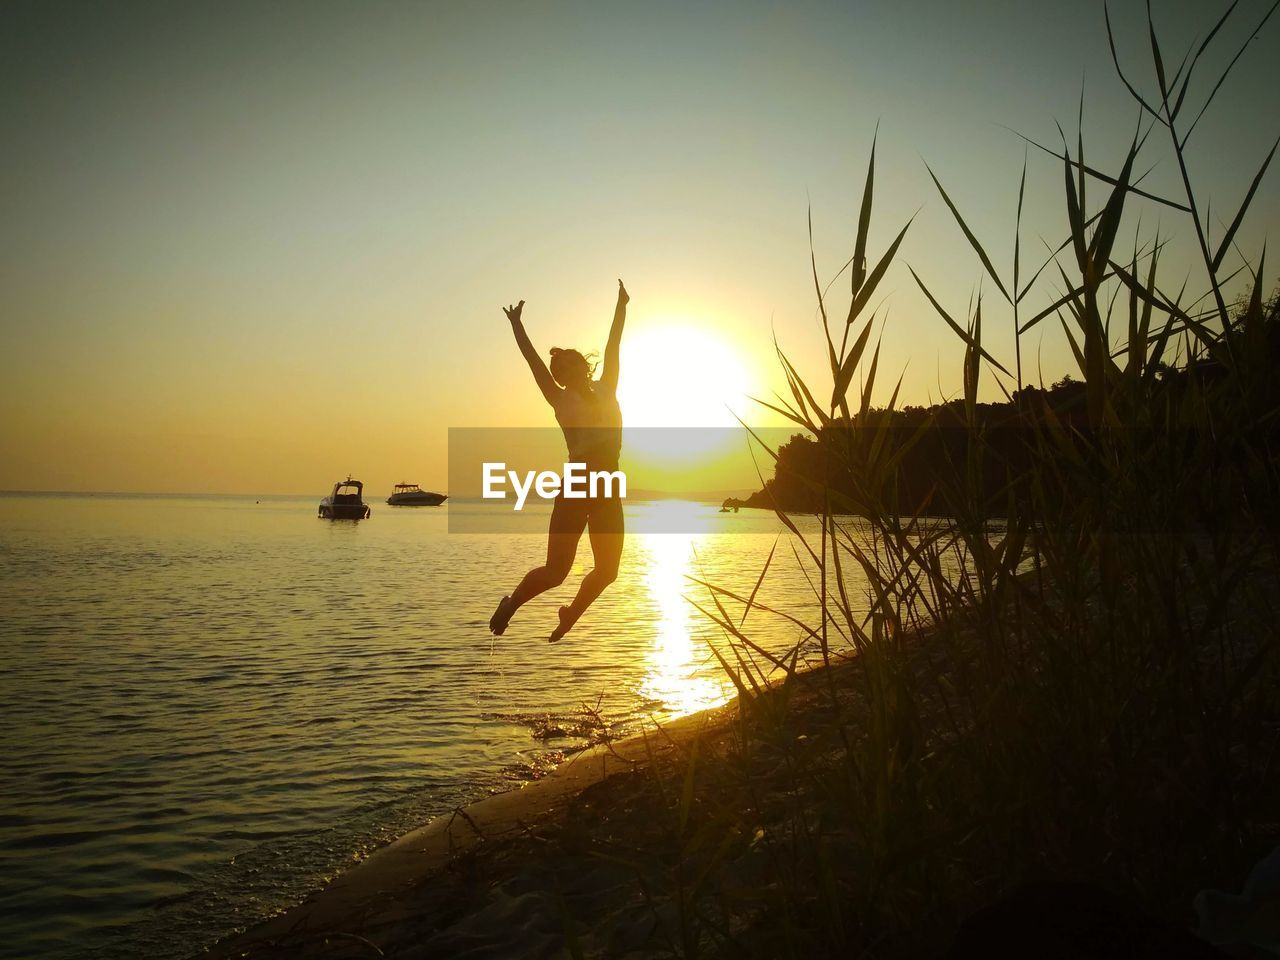 sky, sunset, water, silhouette, mid-air, one person, jumping, leisure activity, lifestyles, real people, human arm, arms raised, sea, beauty in nature, nature, scenics - nature, tranquil scene, limb, horizon over water, outdoors, freedom, human limb